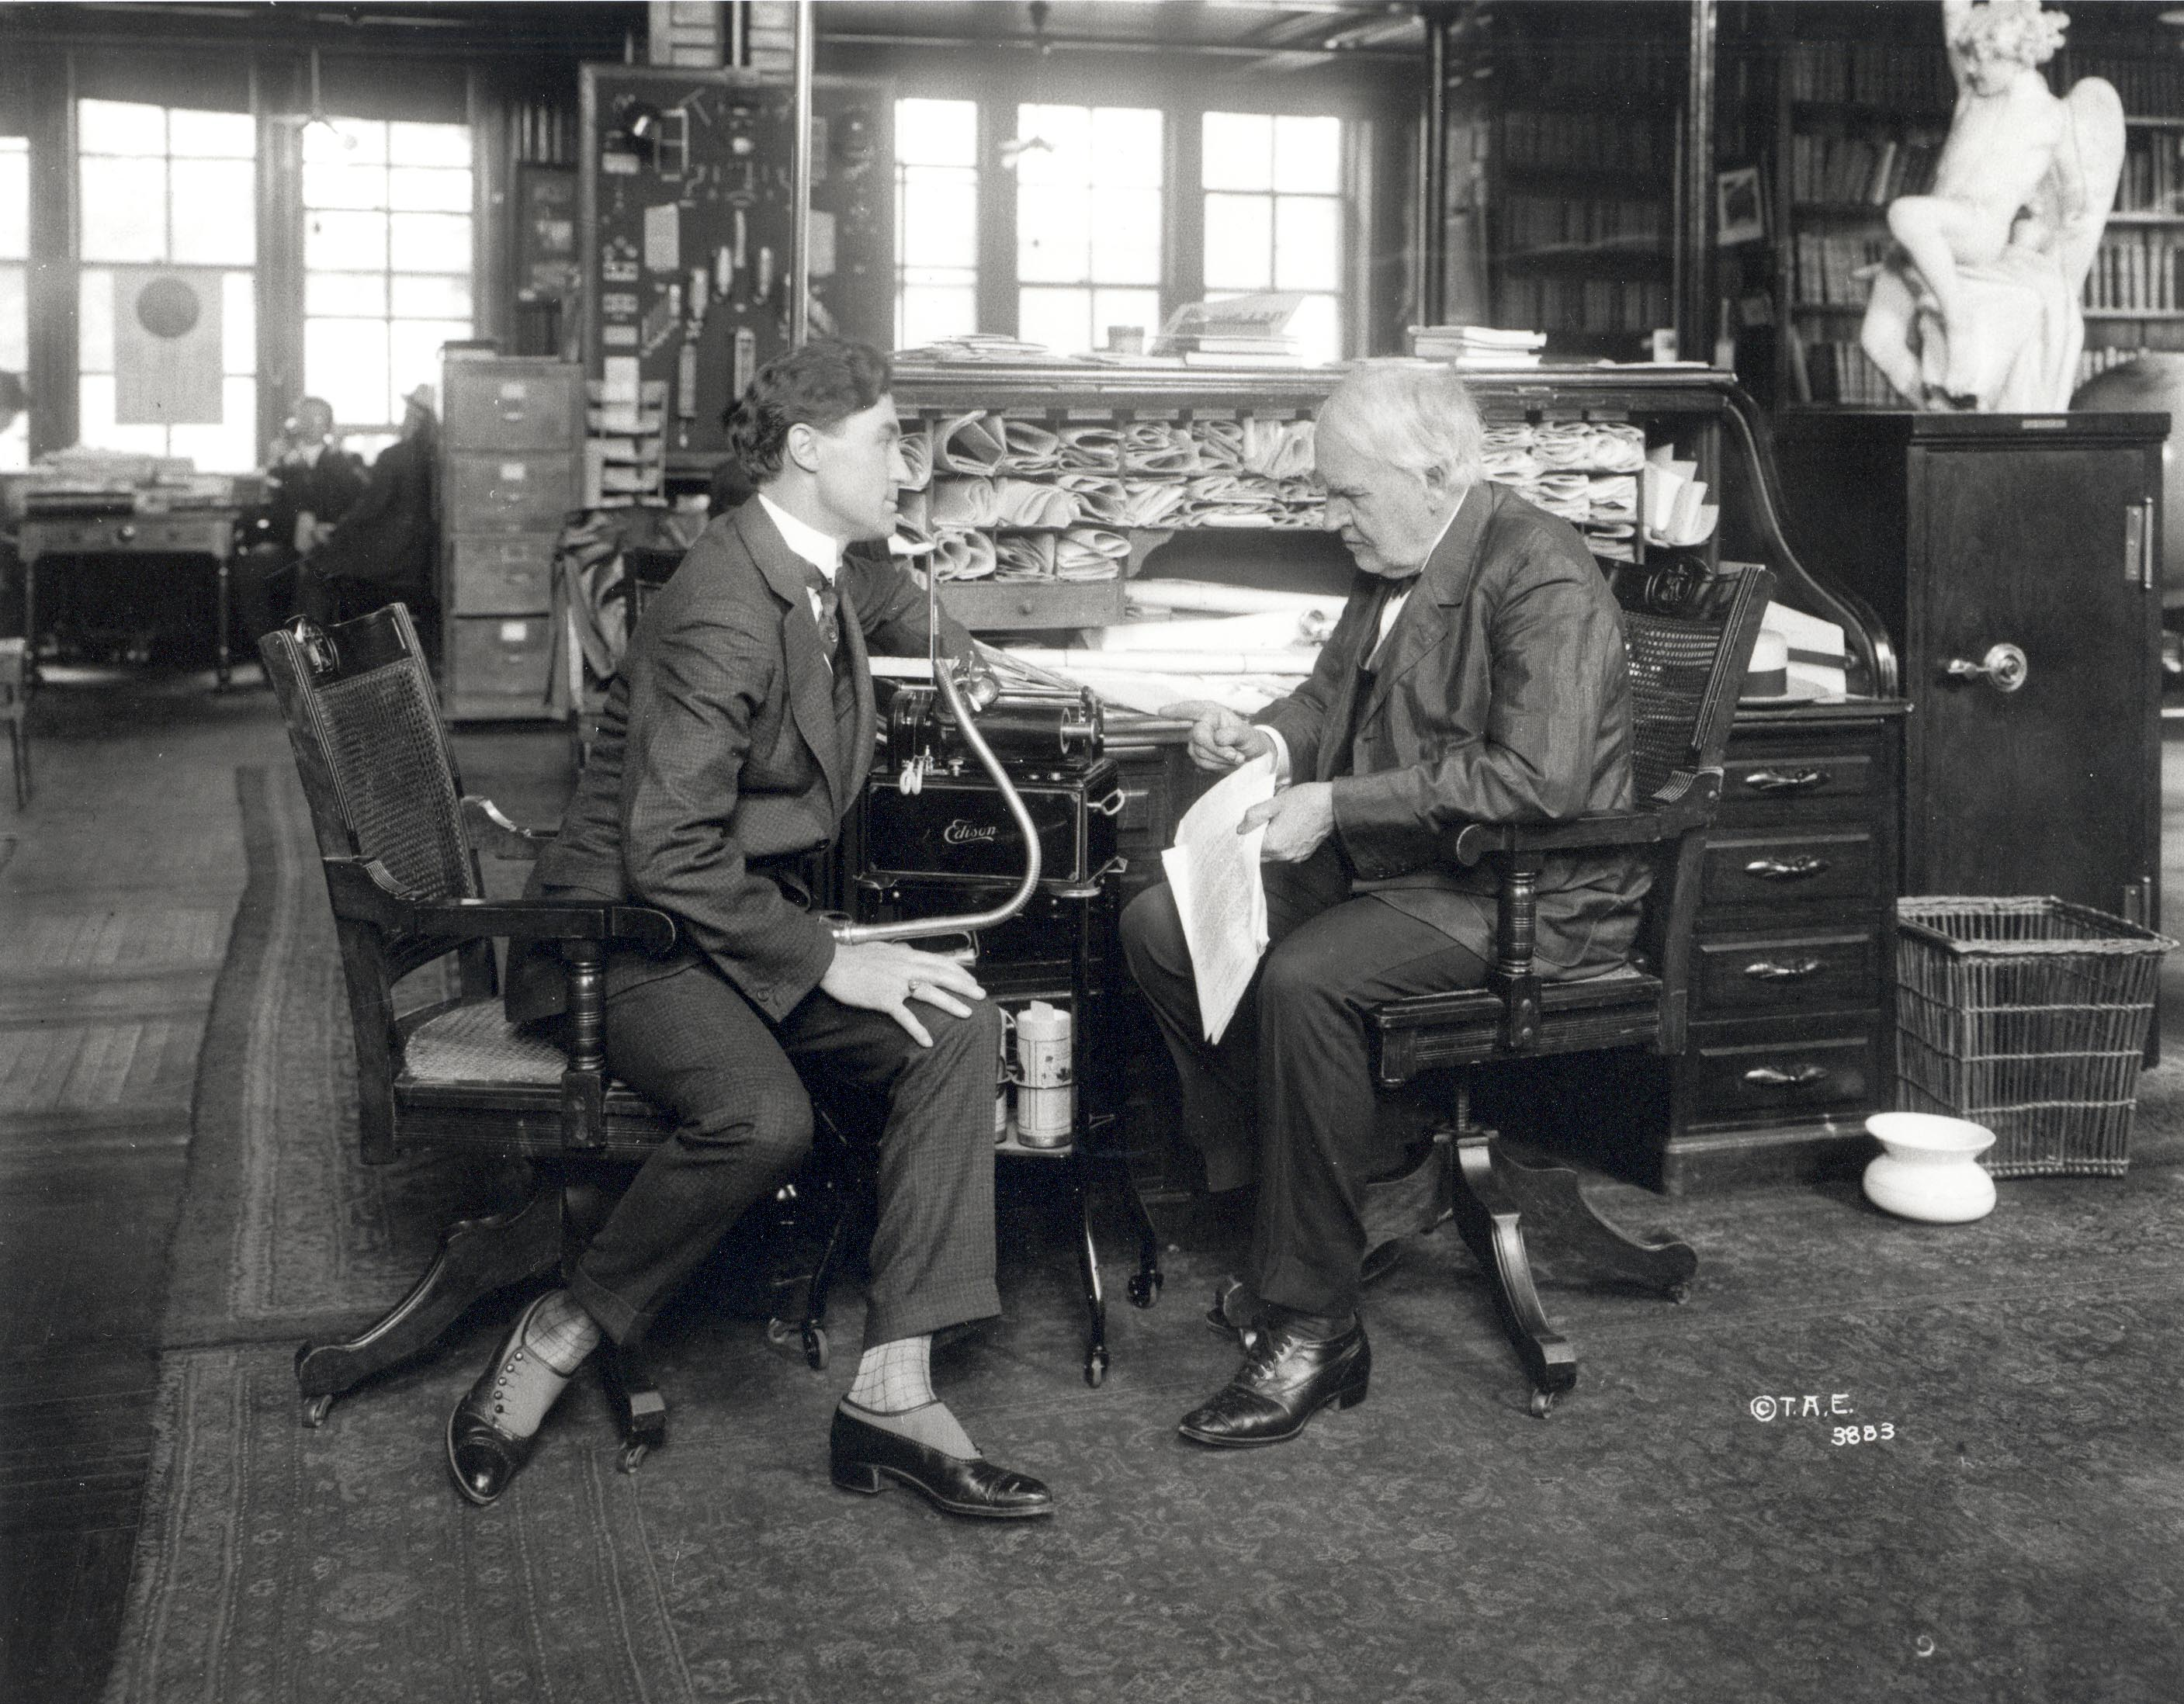 The first Lighting Industry CEO: Thomas Edison